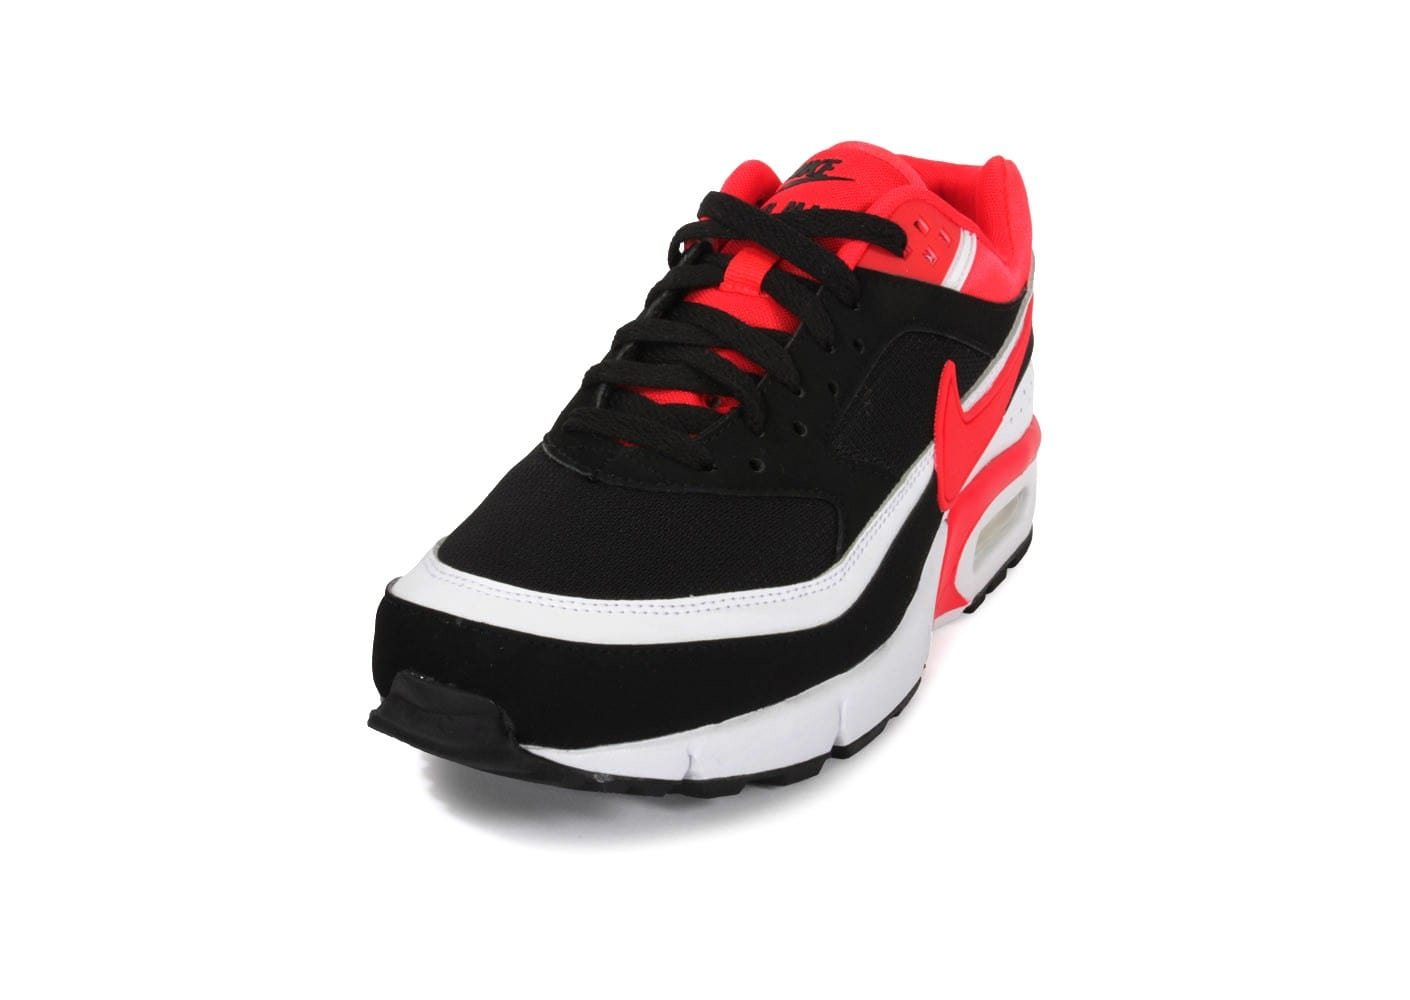 nike air max bw homme chaussures noir rouge 3010